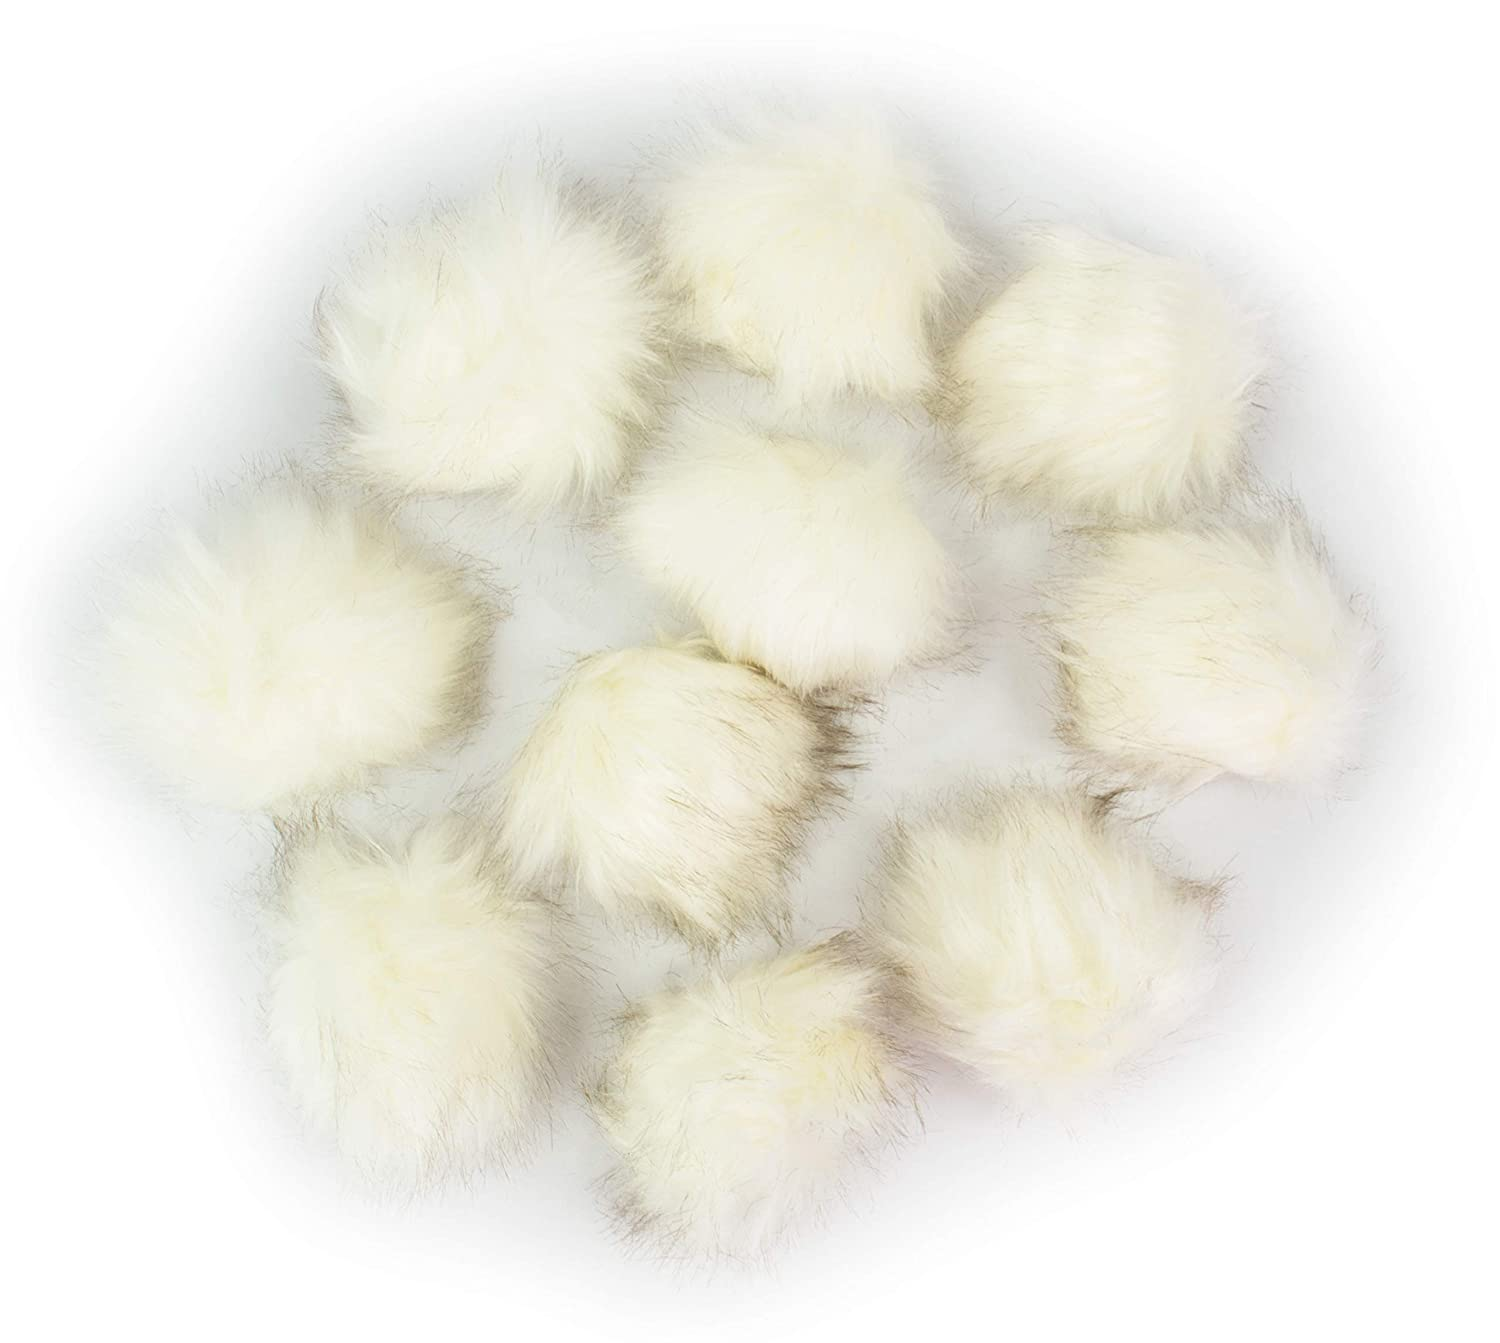 9081c180fa2 Amazon.com  DIY Craft Projects Faux Fur Pompom Balls